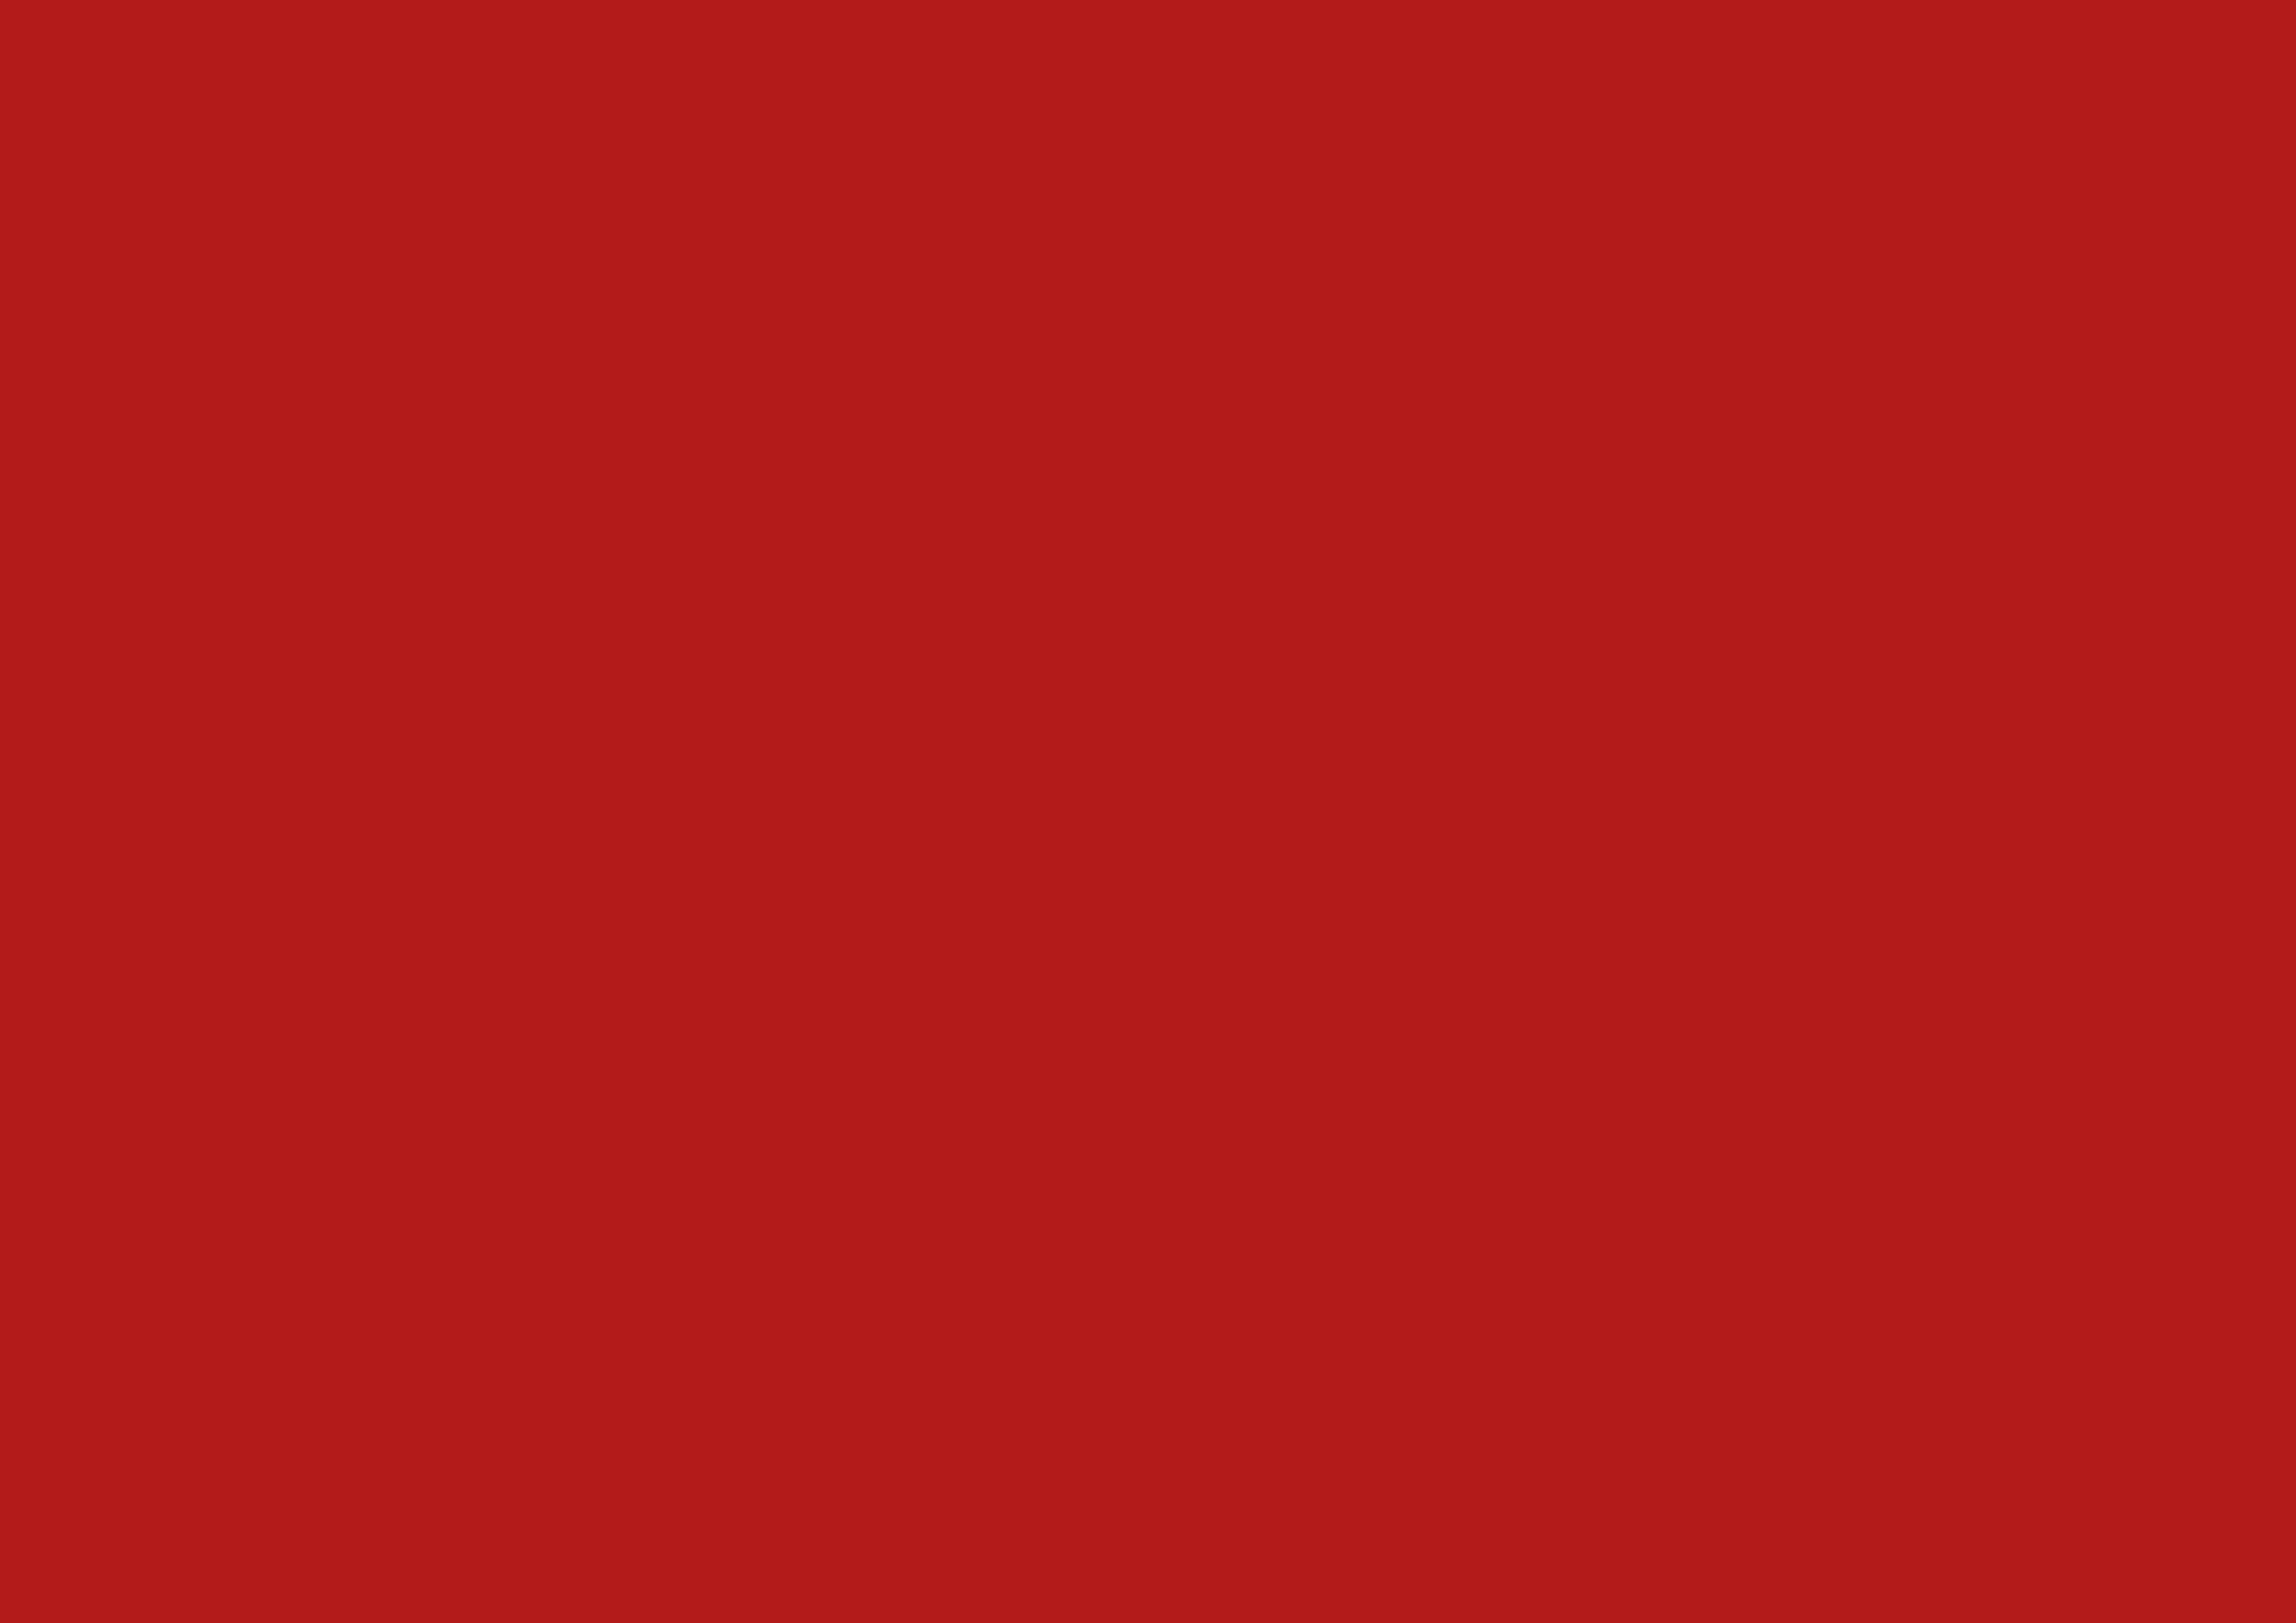 3508x2480 Cornell Red Solid Color Background